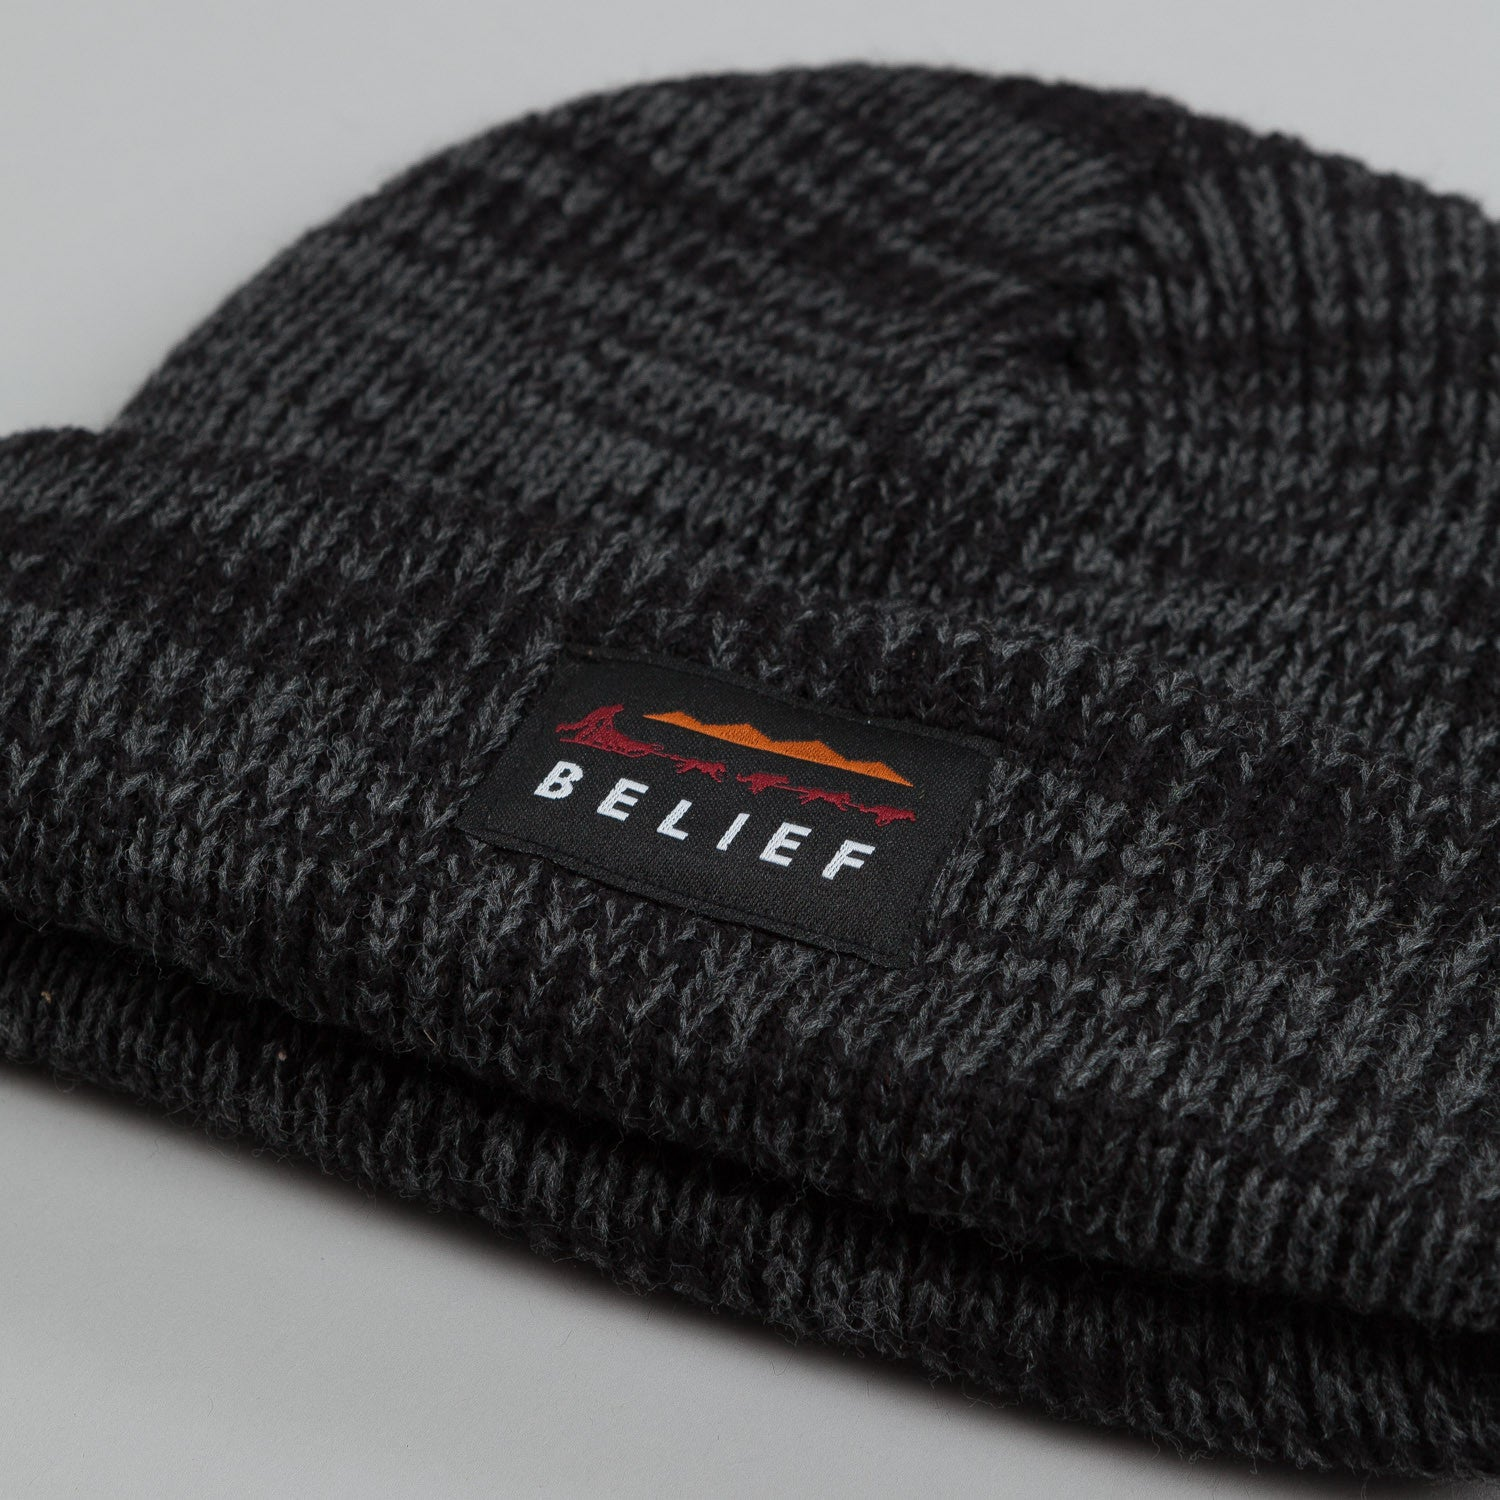 Belief Dogsled Beanie Black Marl